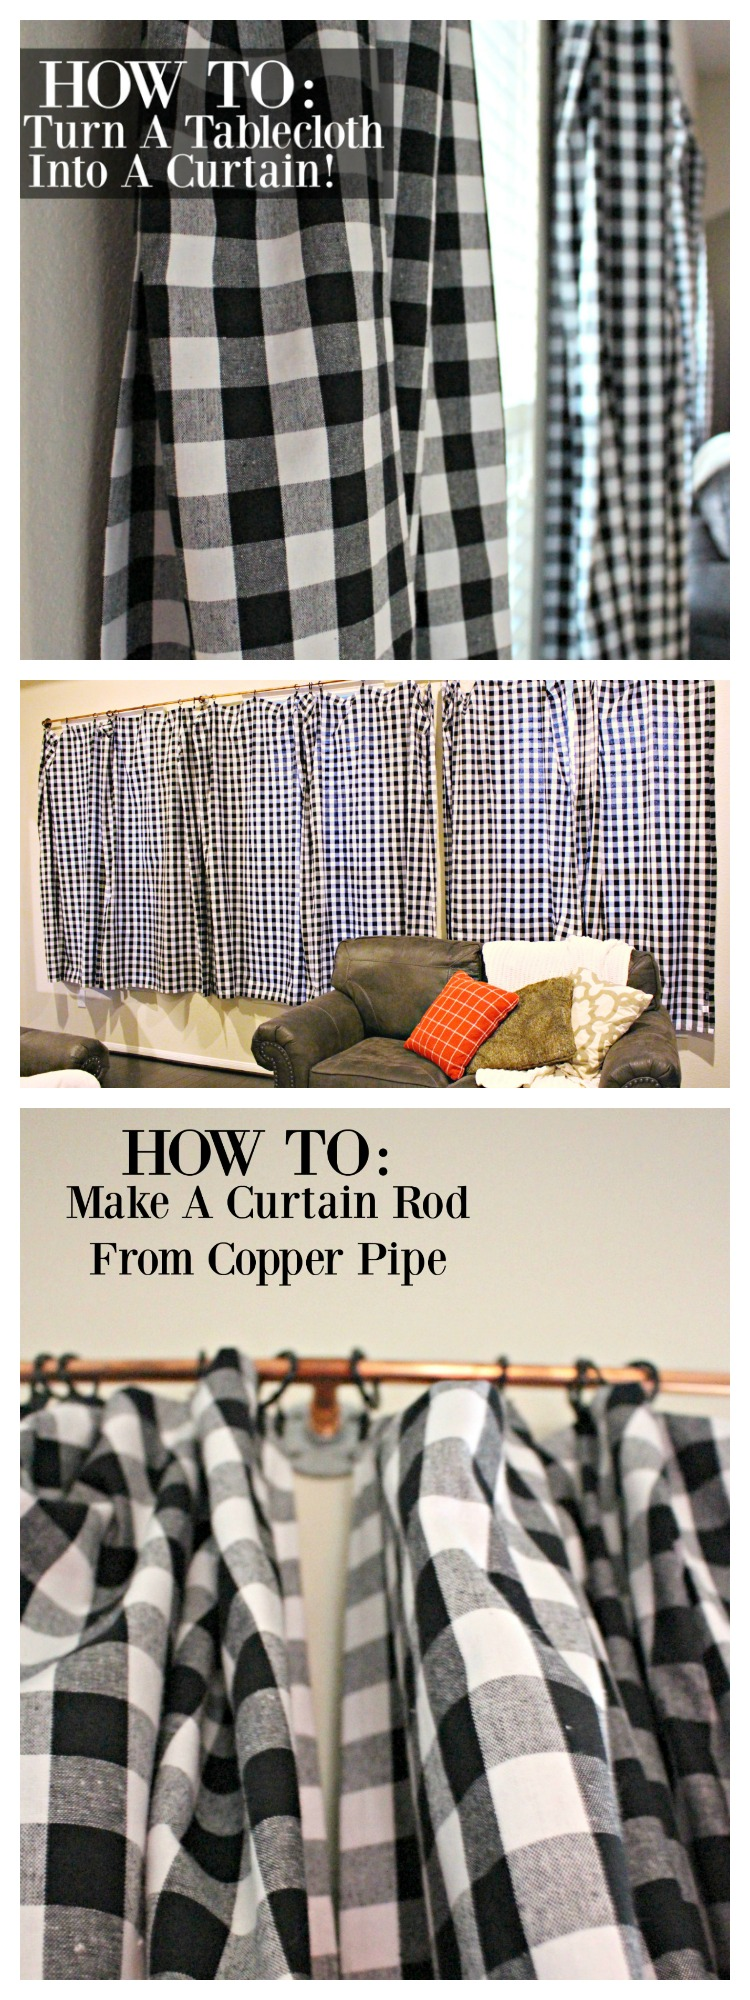 How to DIY Industrial Style Curtains from Copper Pipe! How to DIY Curtains for CHEAP from Tablecloths! #DIY #HomeDecor #Curtains #Gingham